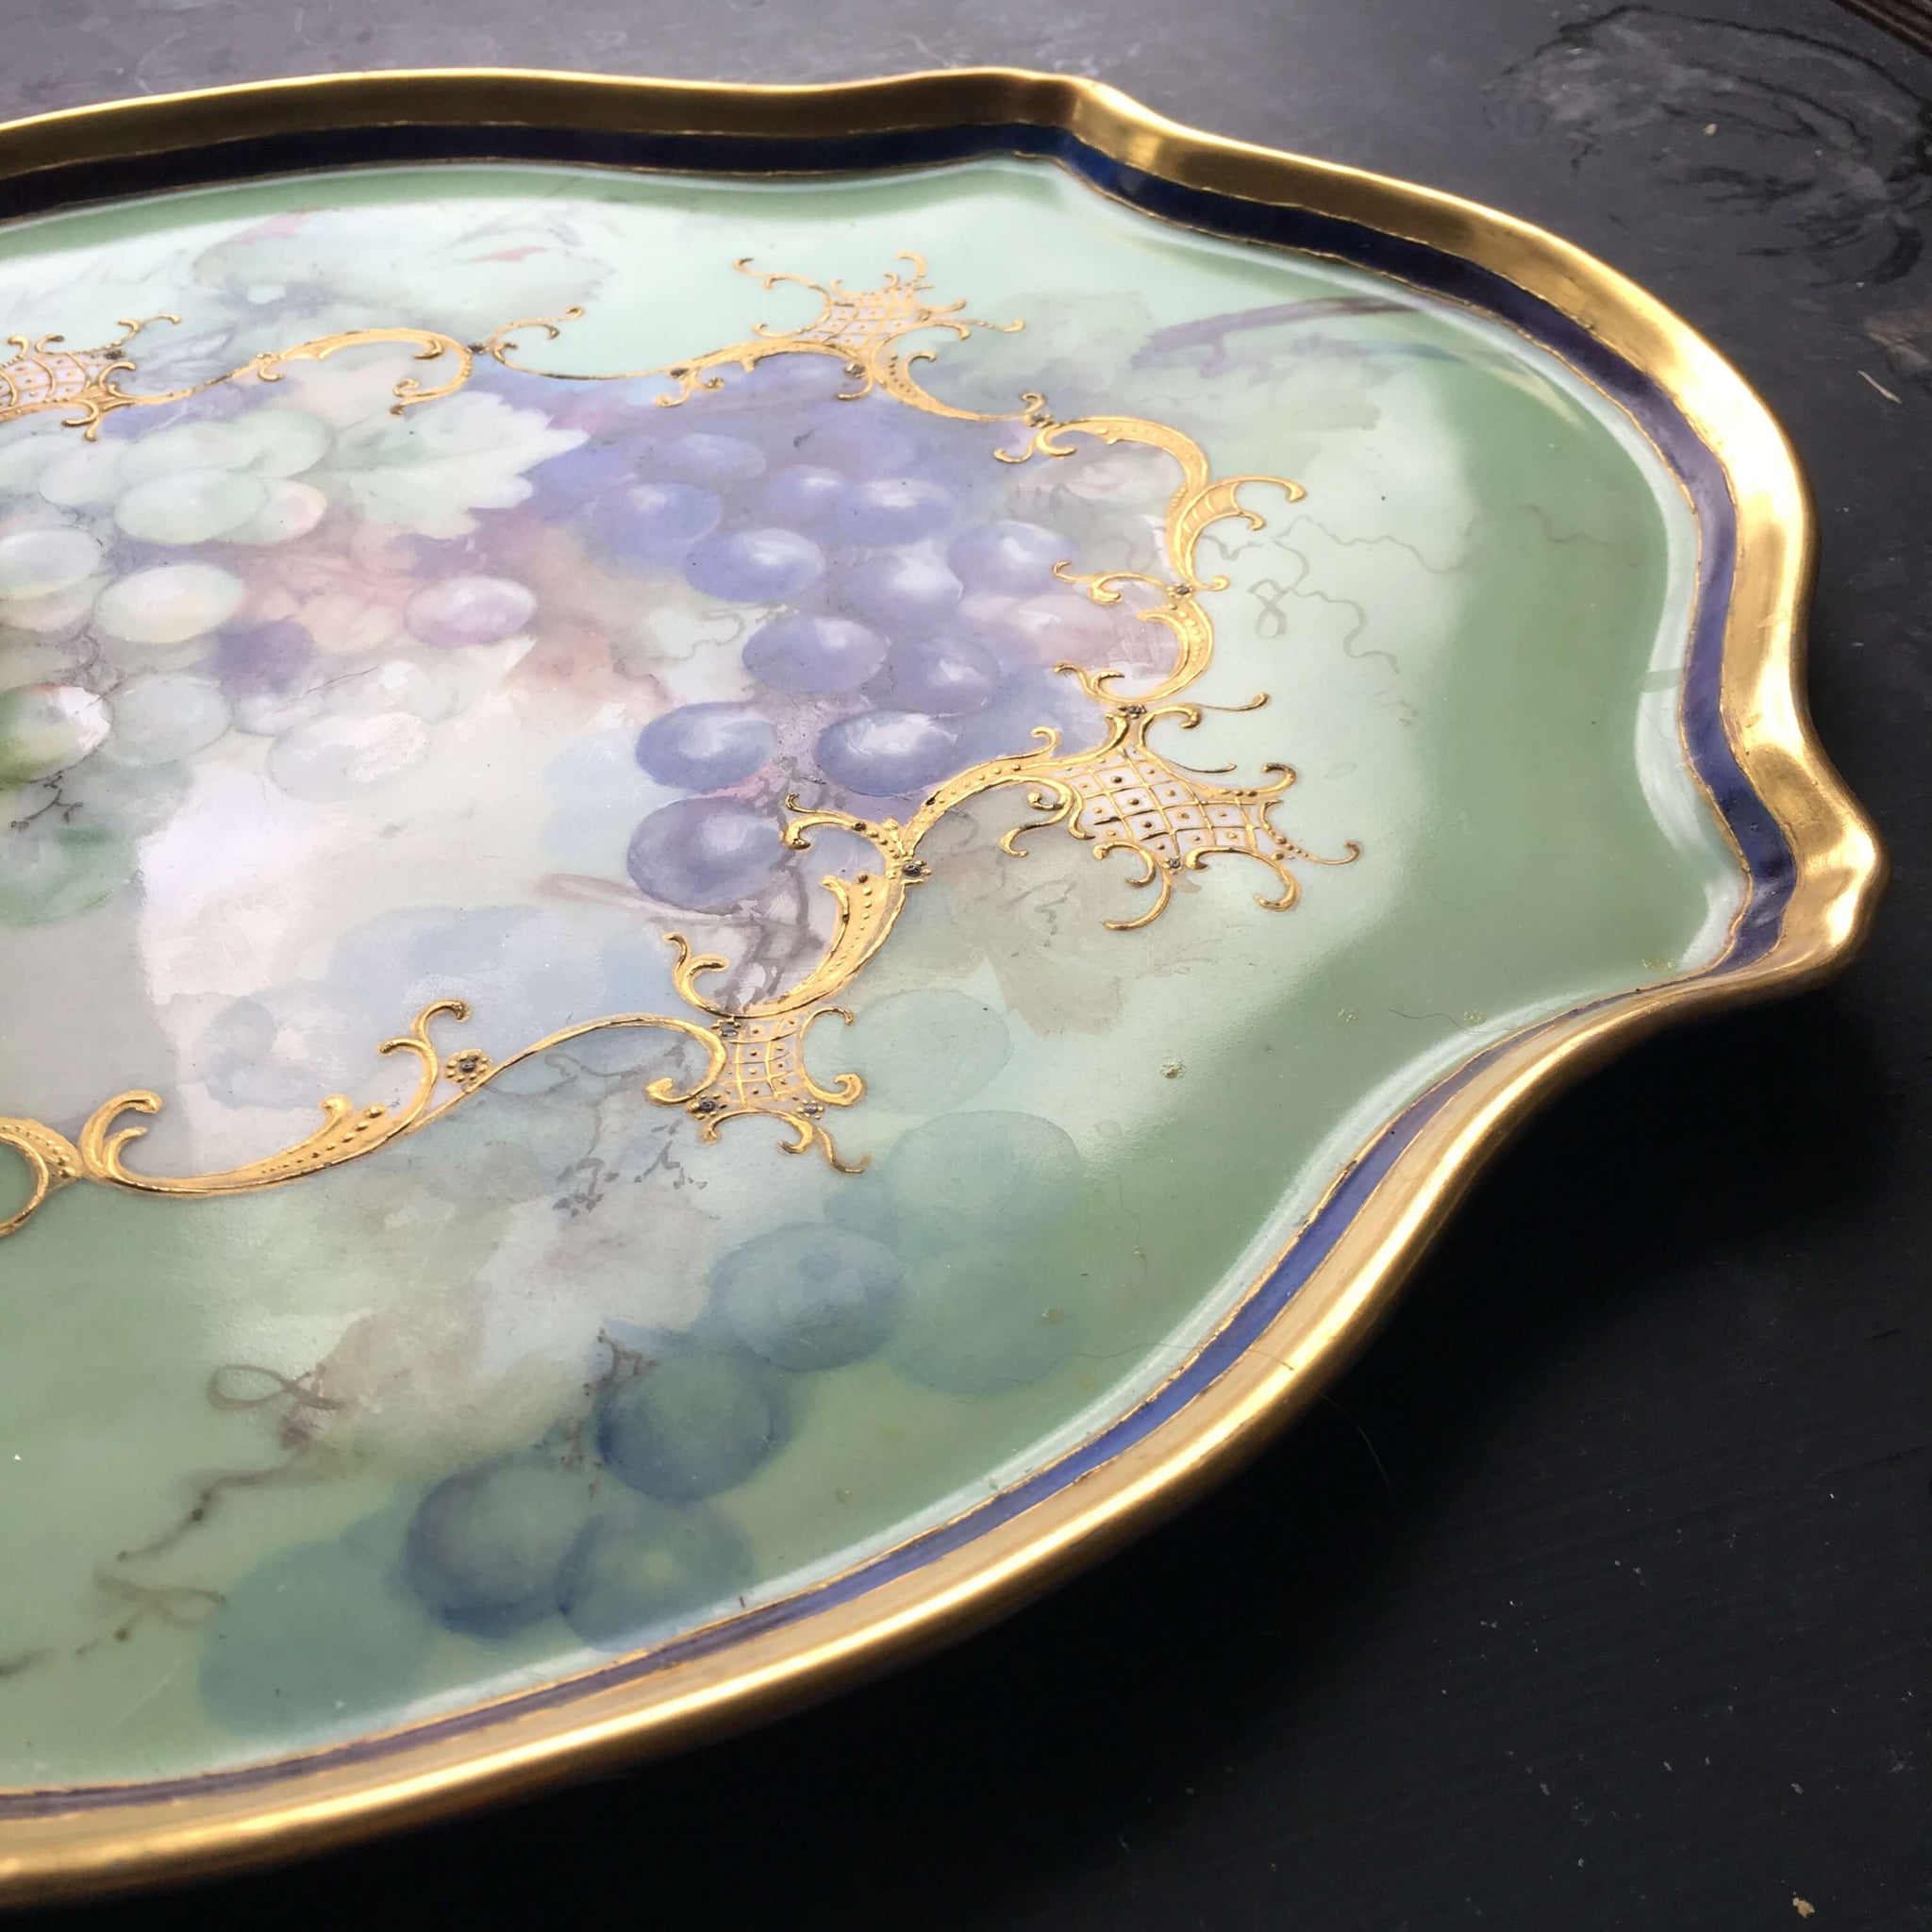 Antique Handpainted Porcelain Limoges Serving Tray circa 1900 - Signed by the Artist - Jean Pouyet Limoges